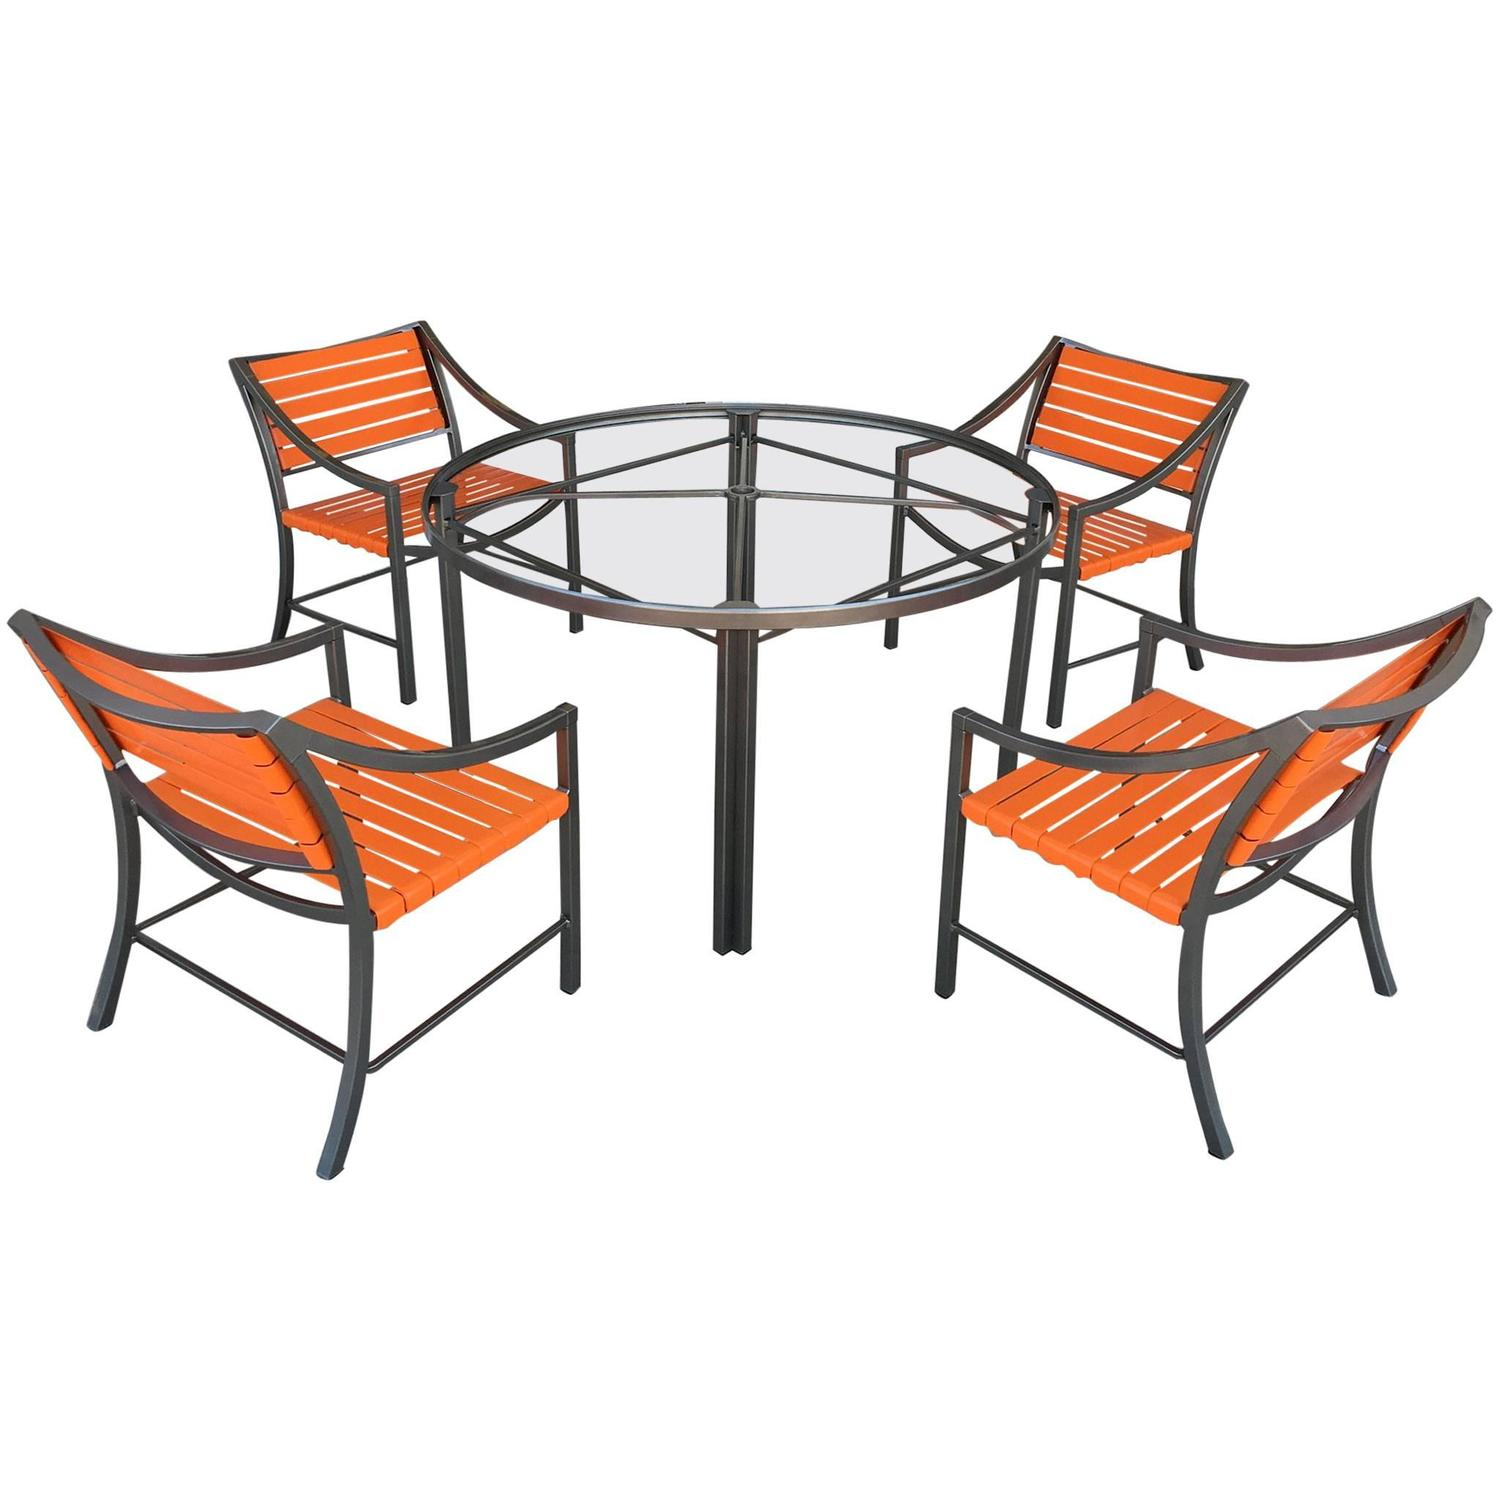 1970s Outdoor Dining Set By Brown Jordan